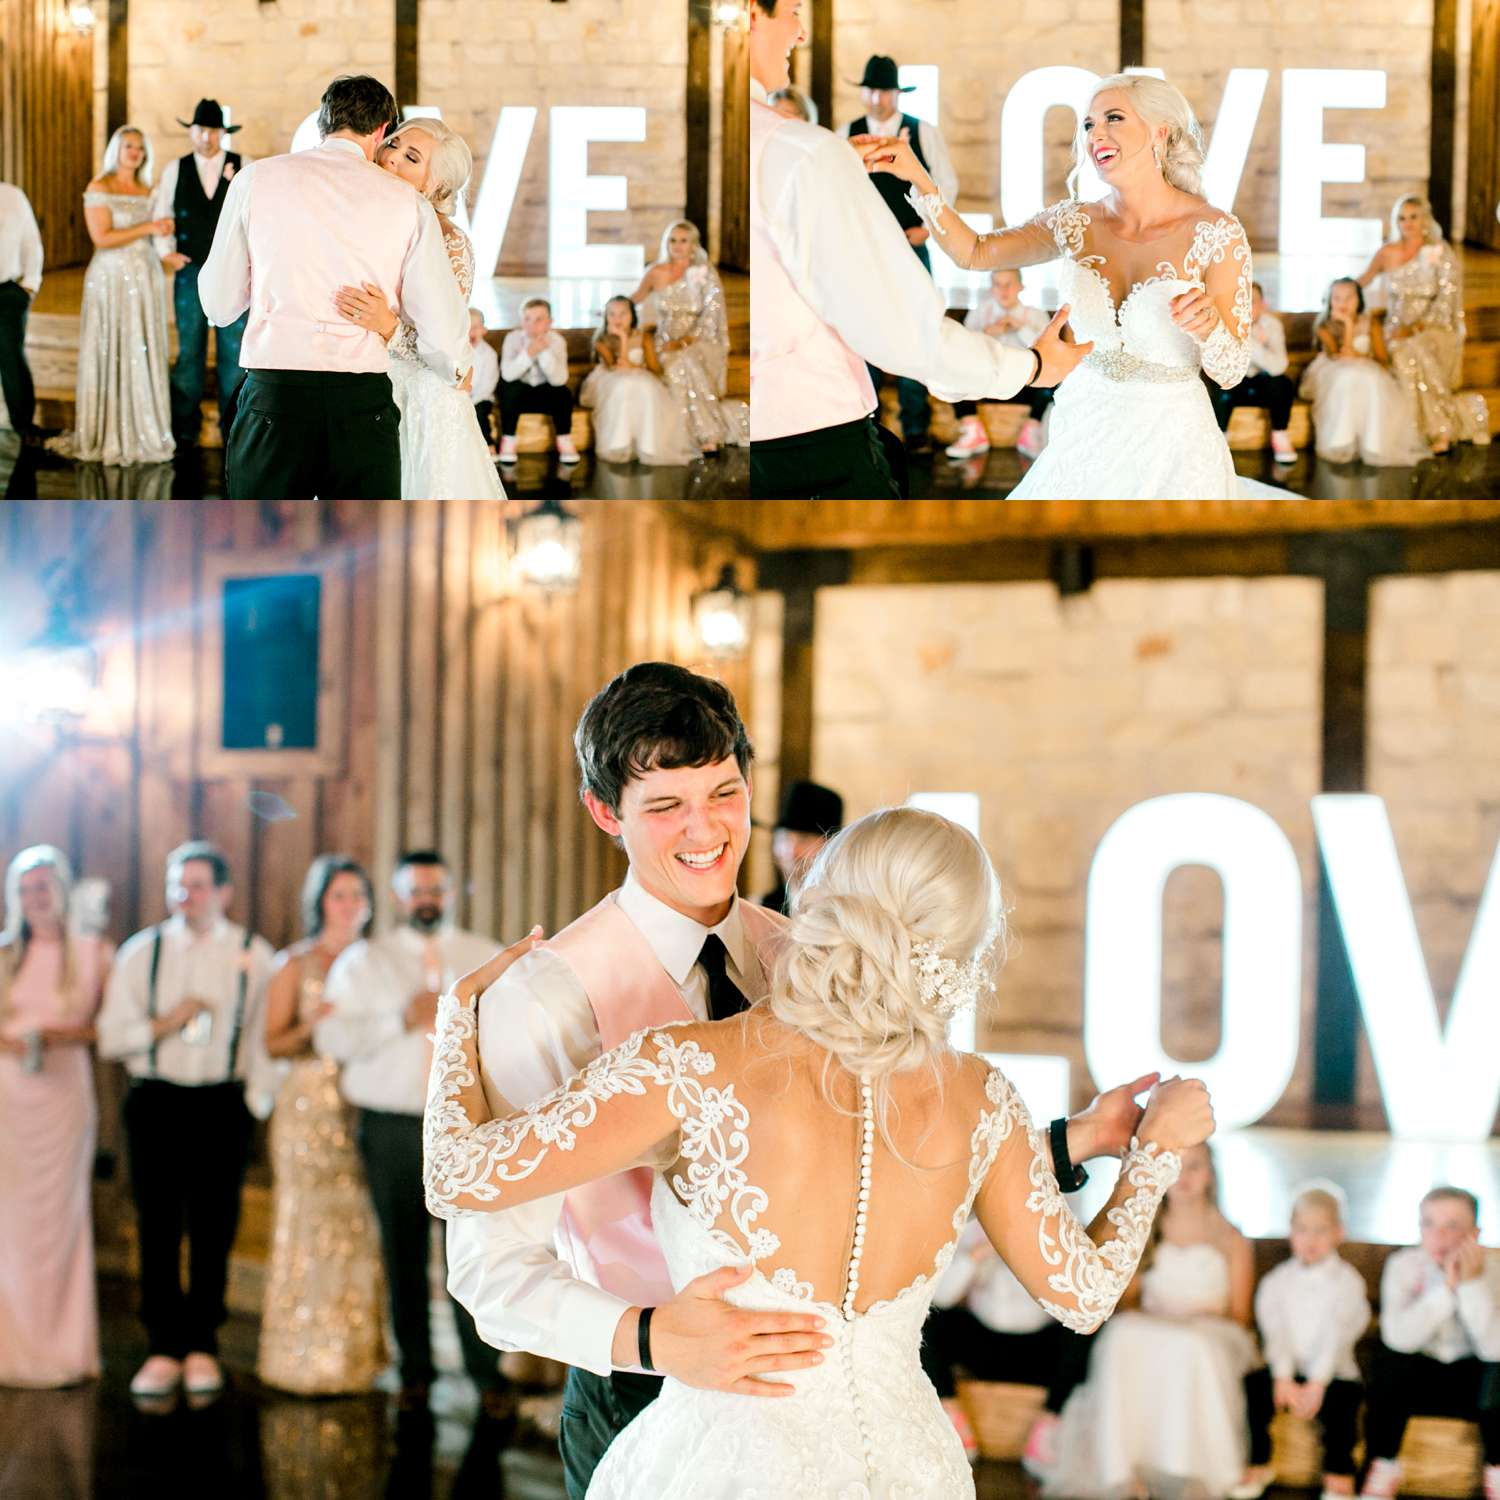 JESSICA+LYLE+NEEL+THE_SPRINGS_EVENTS_WEDDING_OKLAHOMA_ALLEEJ_PHOTOGRAPHER_0124.jpg